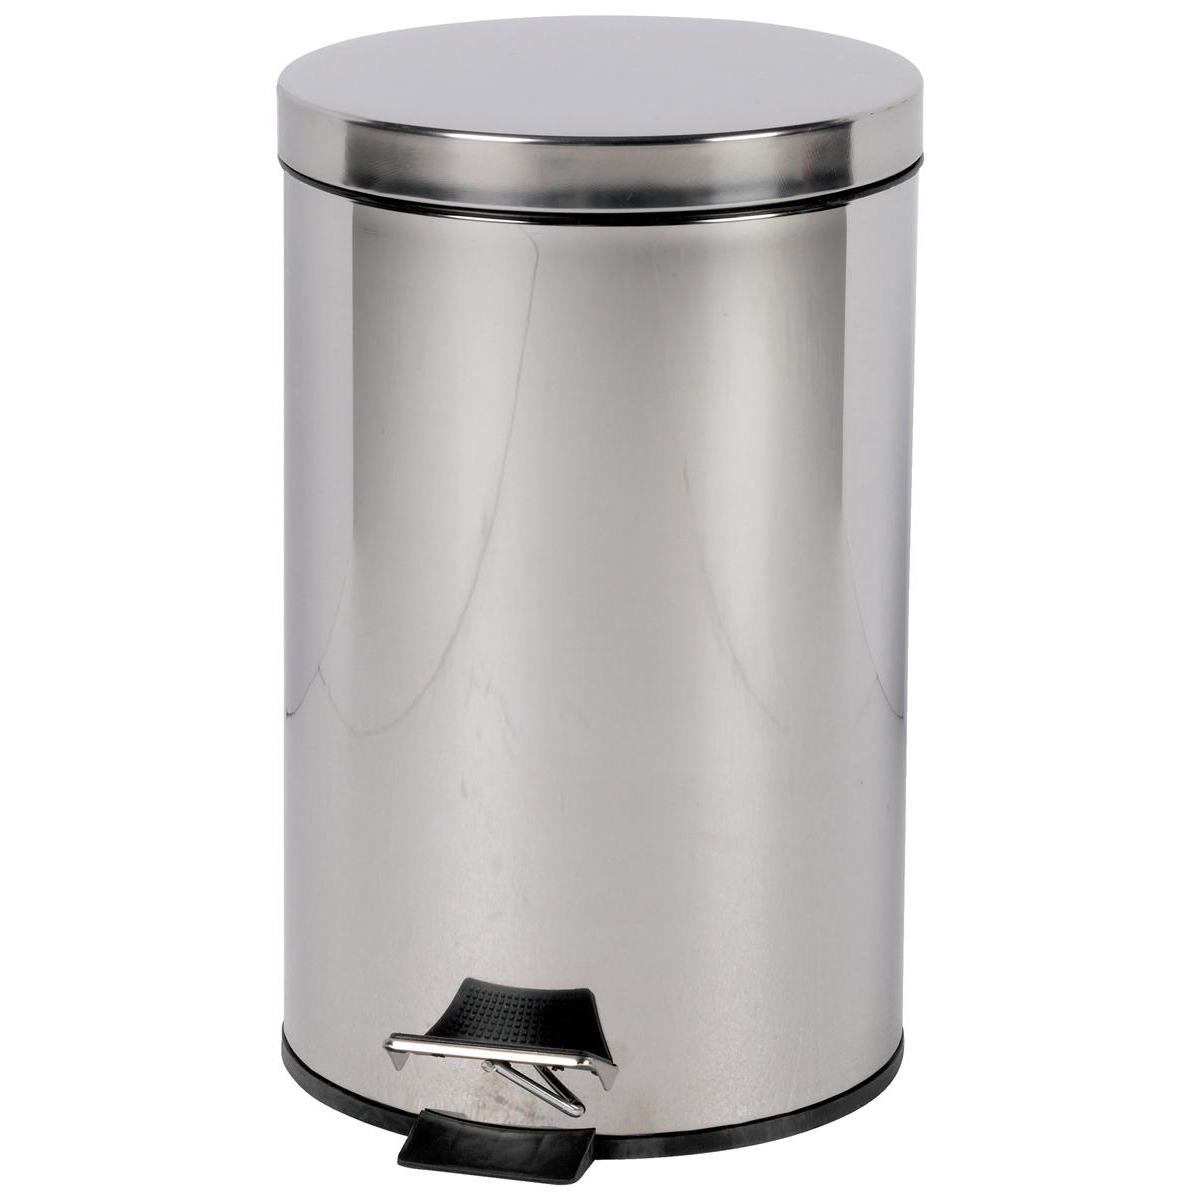 Metallic bins Pedal Bin with Removable Plastic Liner 12 Litre Stainless Steel